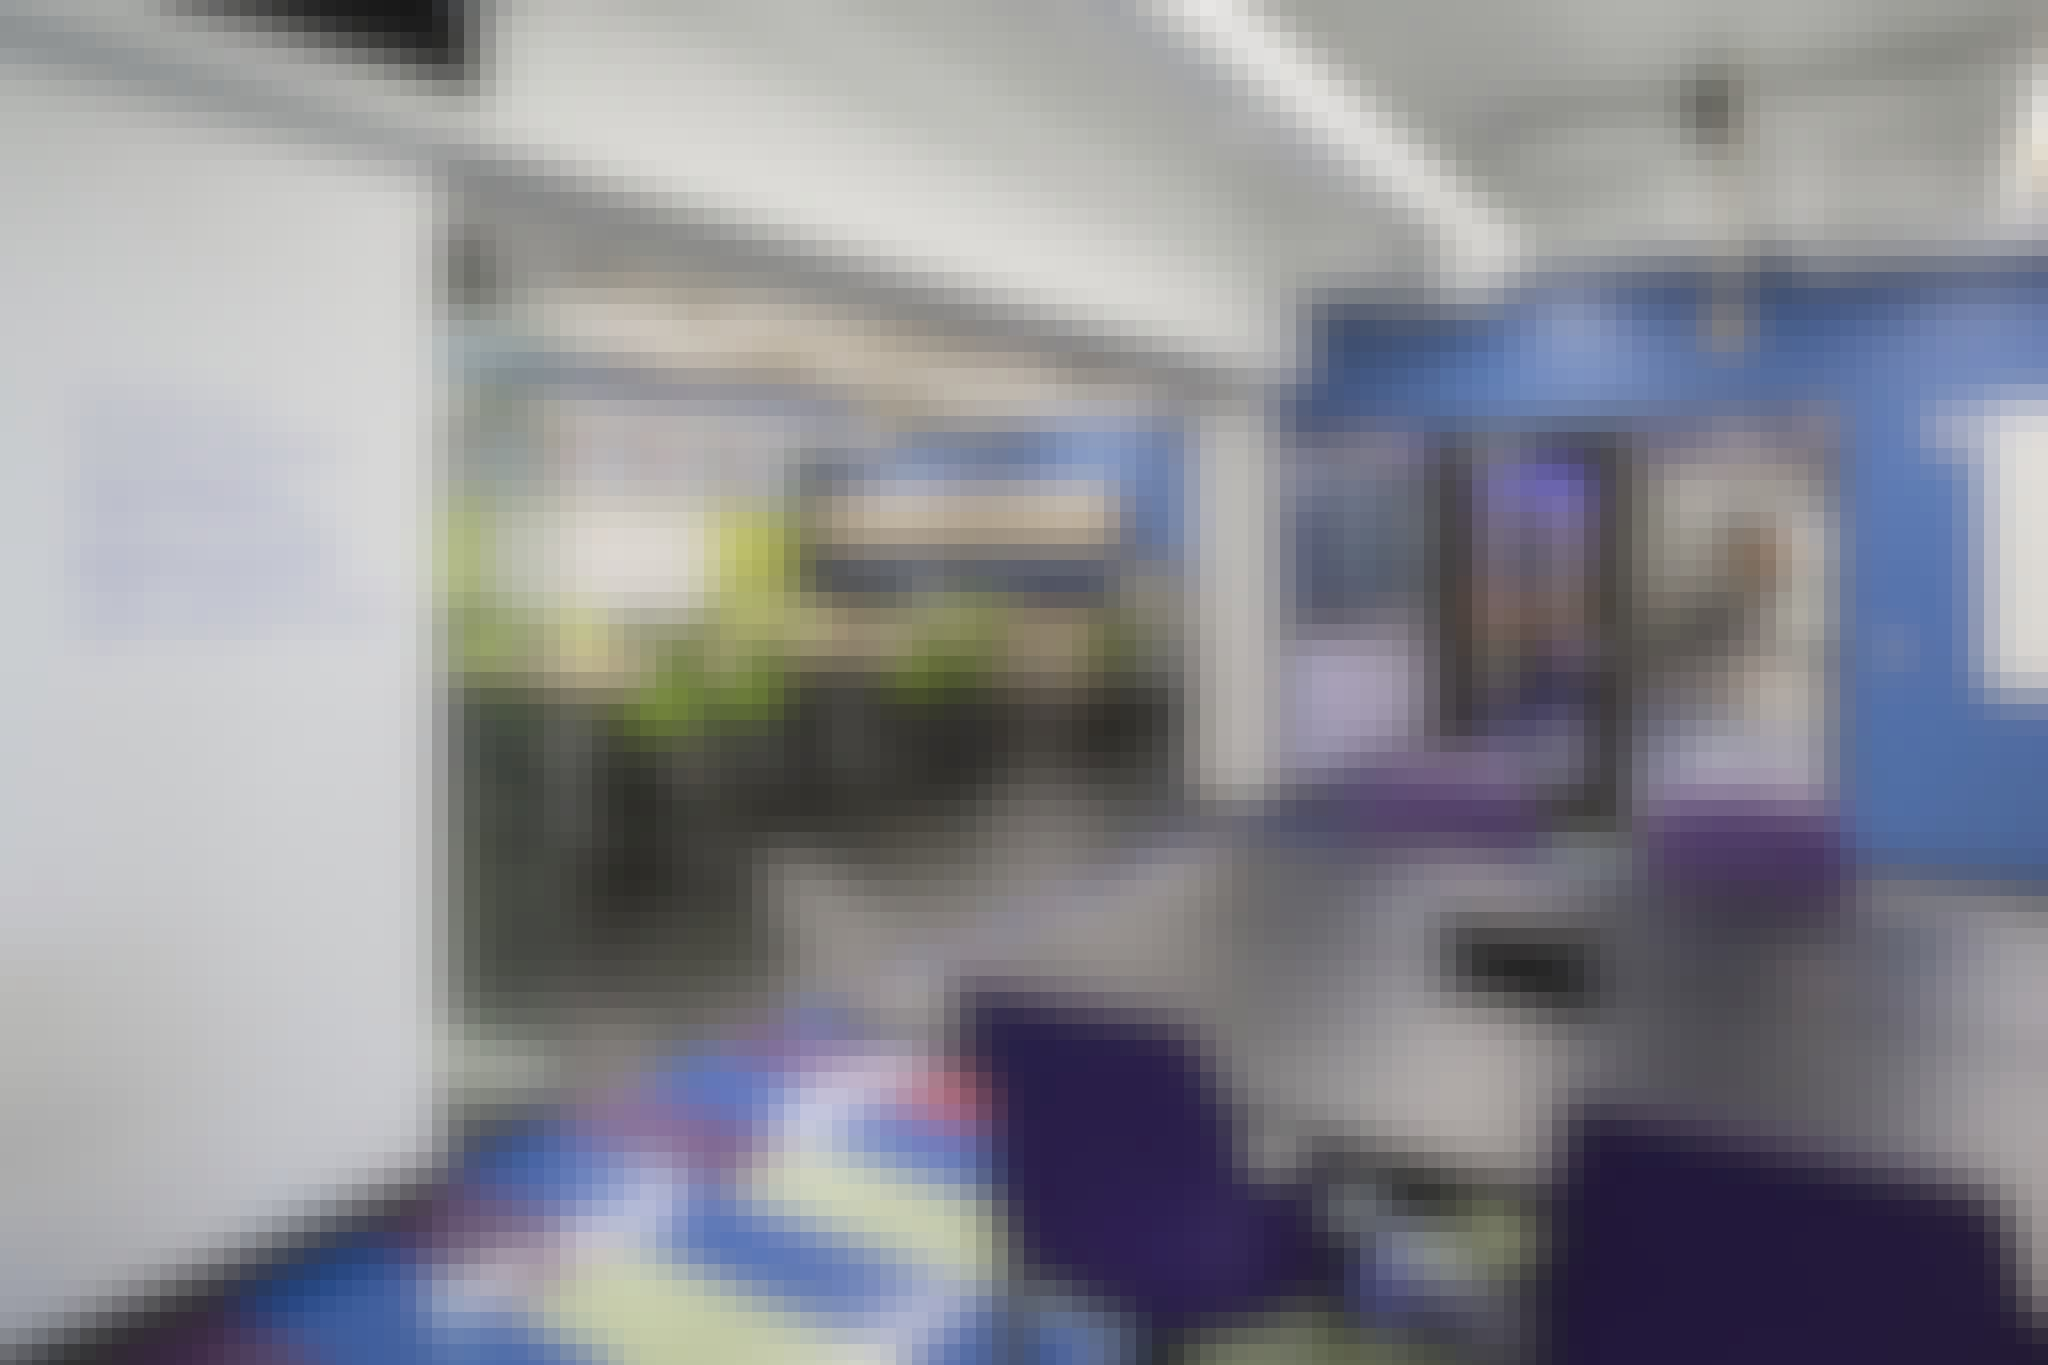 sound caontrol interior frameless glass wall systems between classrooms.